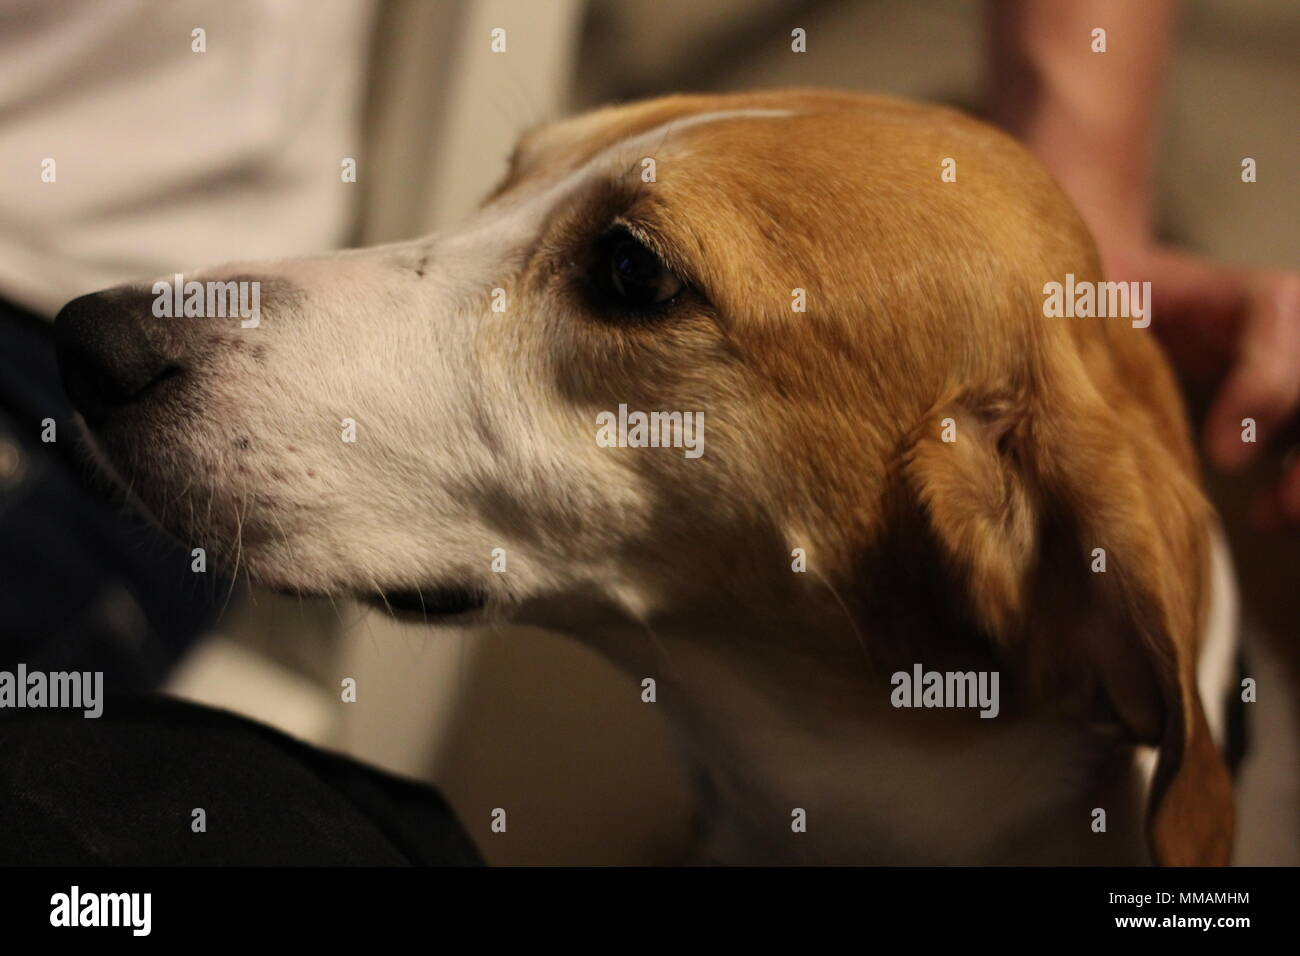 Woof Dog Stock Photos & Woof Dog Stock Images - Page 2 - Alamy